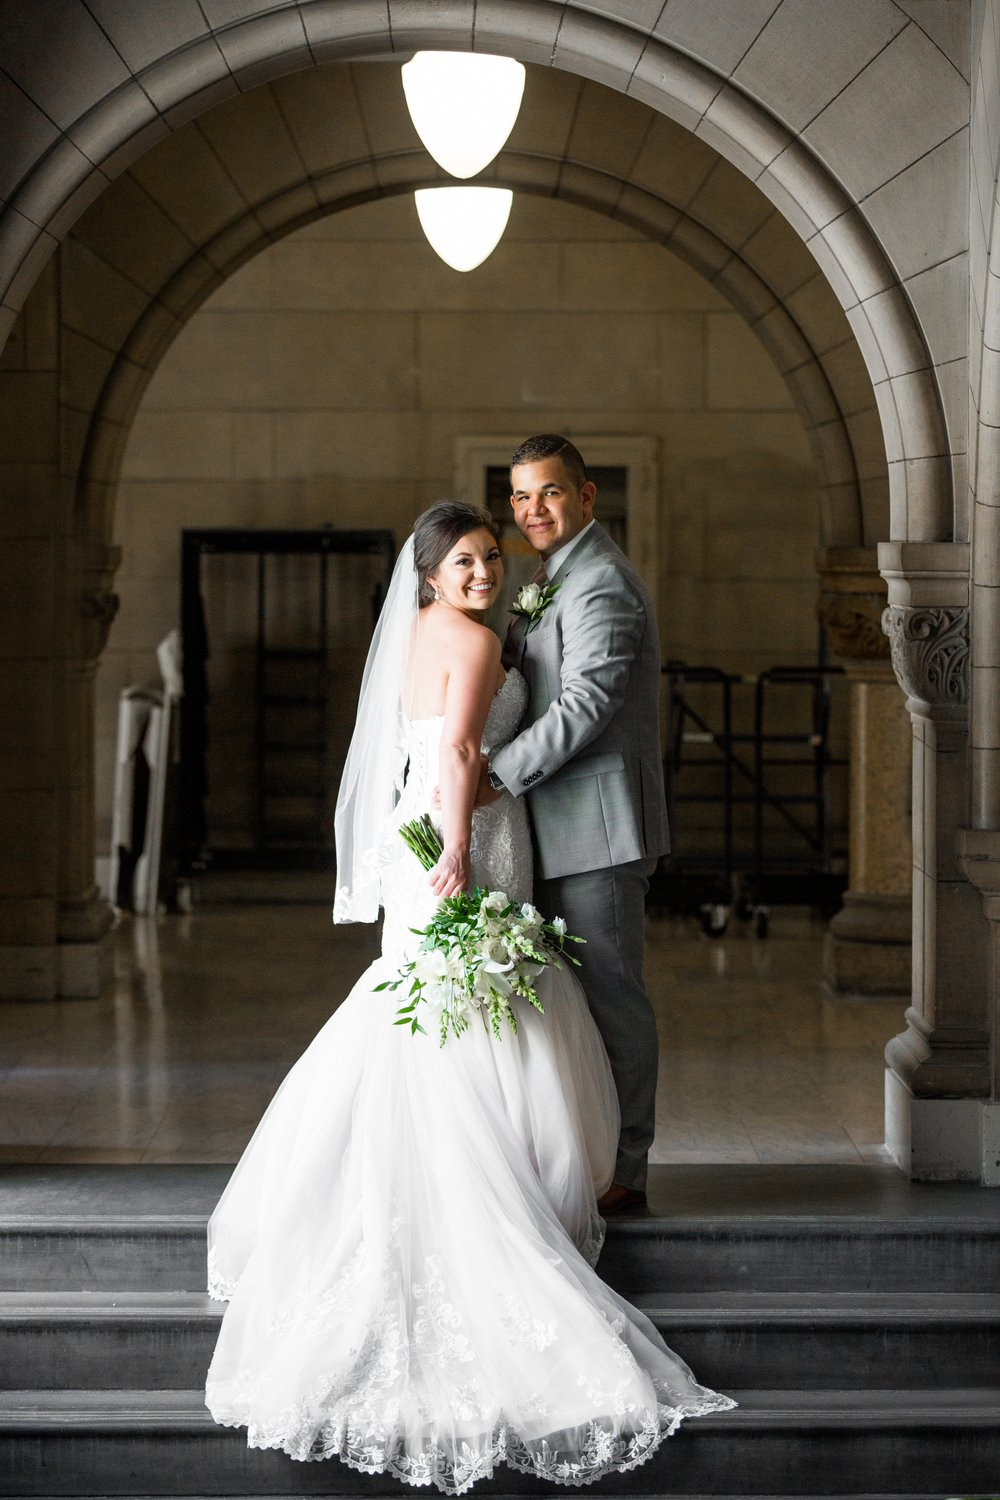 pittsburgh wedding photographer, allegheny courthouse wedding, allegheny courthouse wedding photographer, renaissance pittsburgh hotel wedding, cranberry township wedding photographer